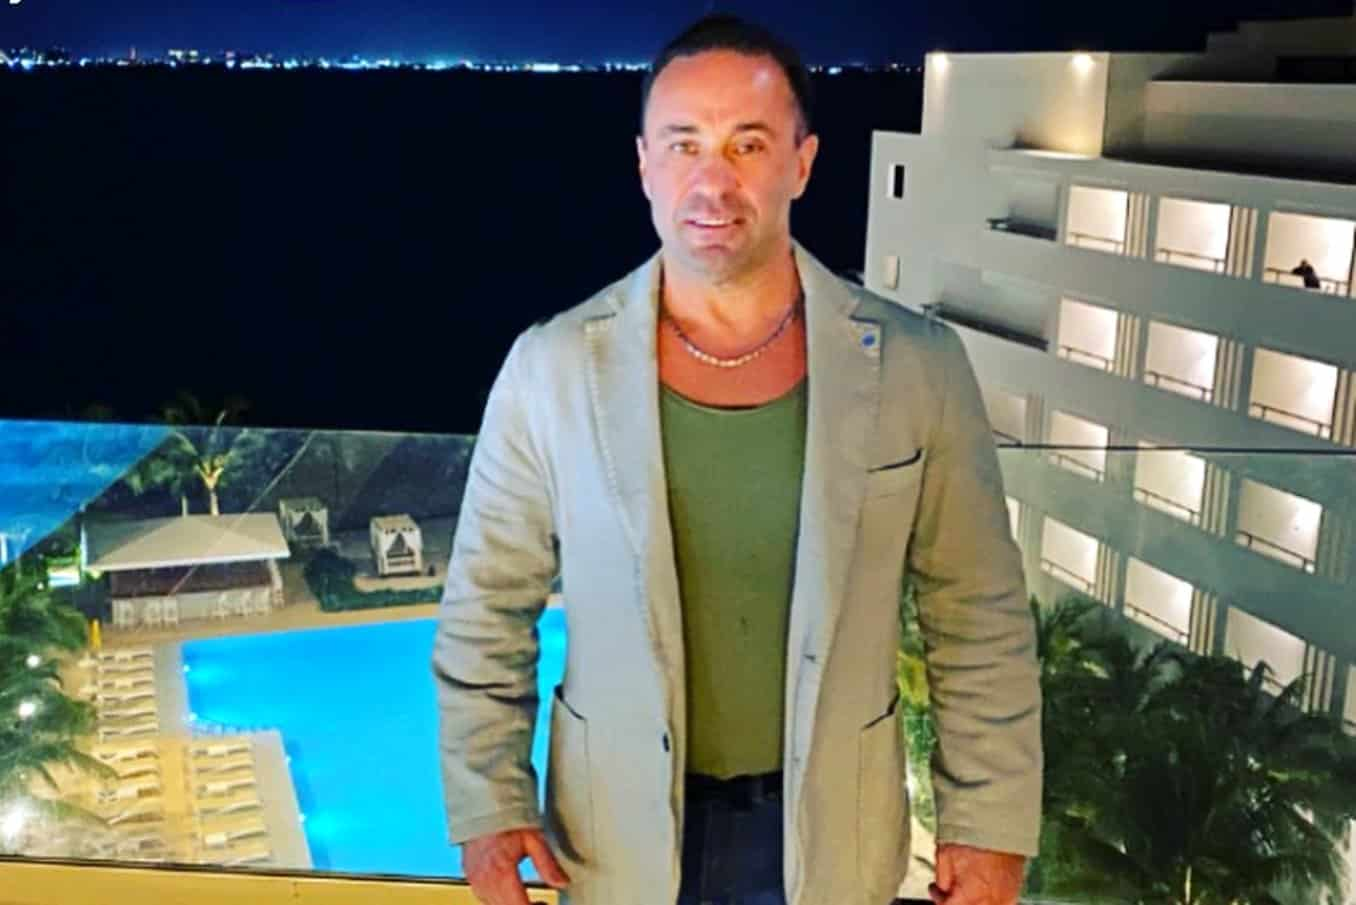 PHOTOS: RHONJ Alum Joe Giudice Shares Selfie And Sexy Bikini Photo Of His Beautiful Italian Girlfriend, See The Photos